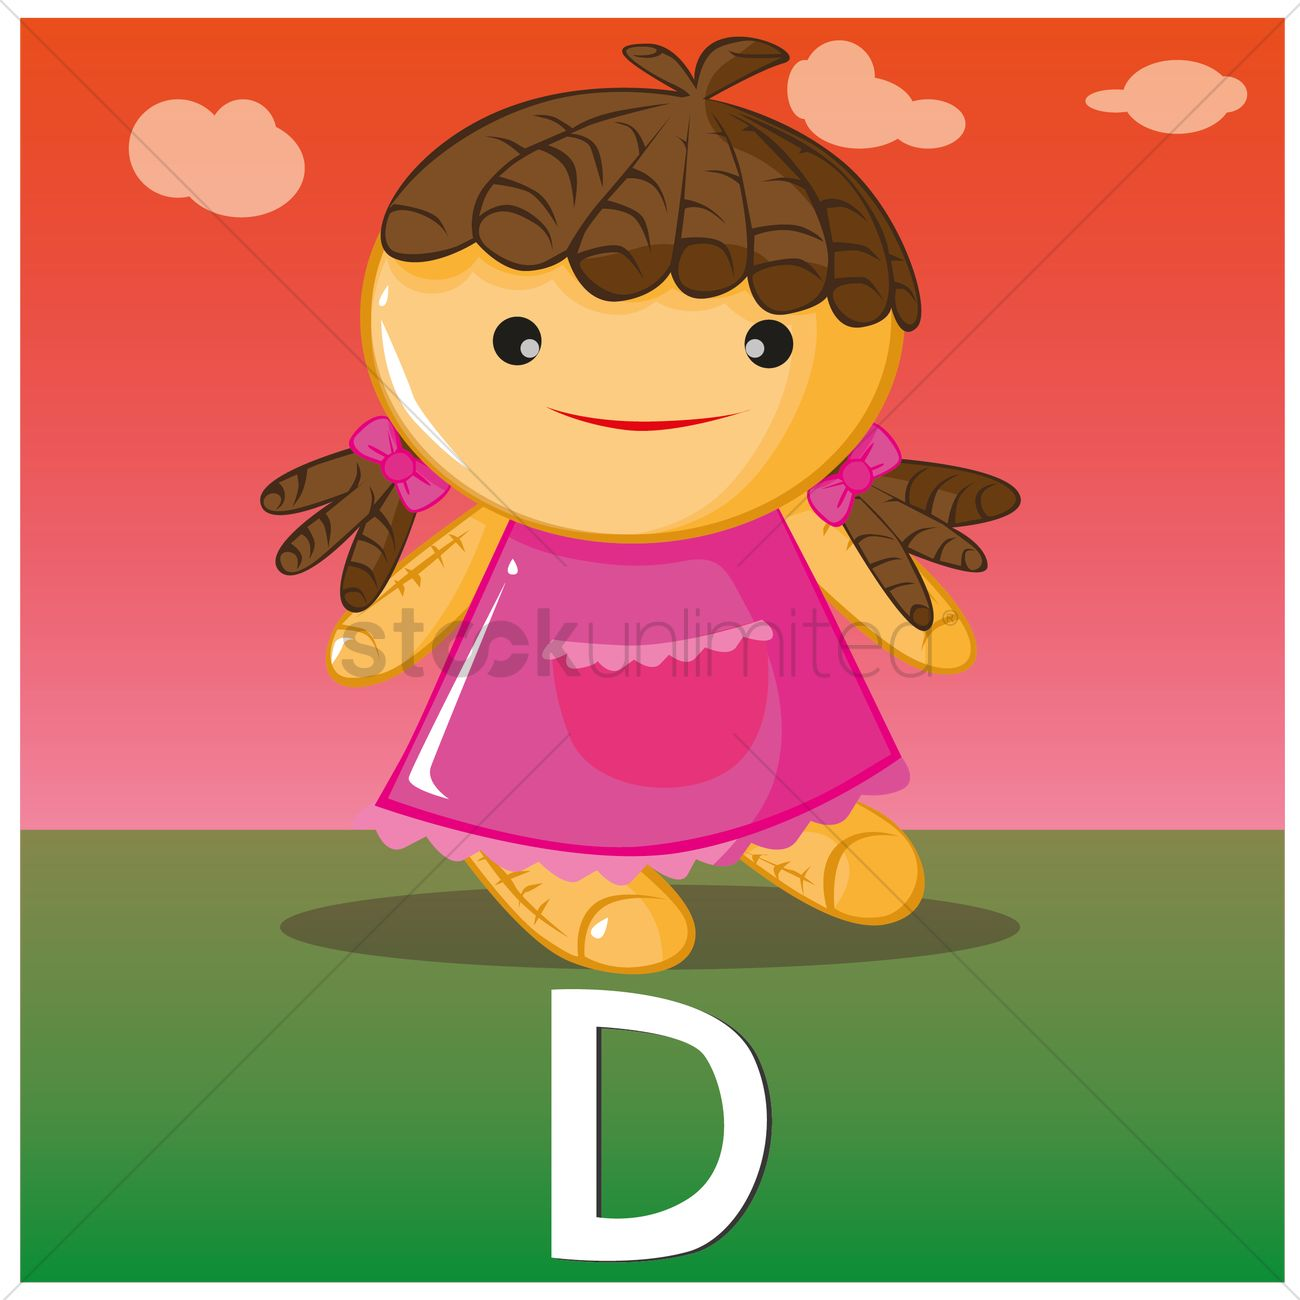 Letter d for doll Vector Image - 1398571 | StockUnlimited